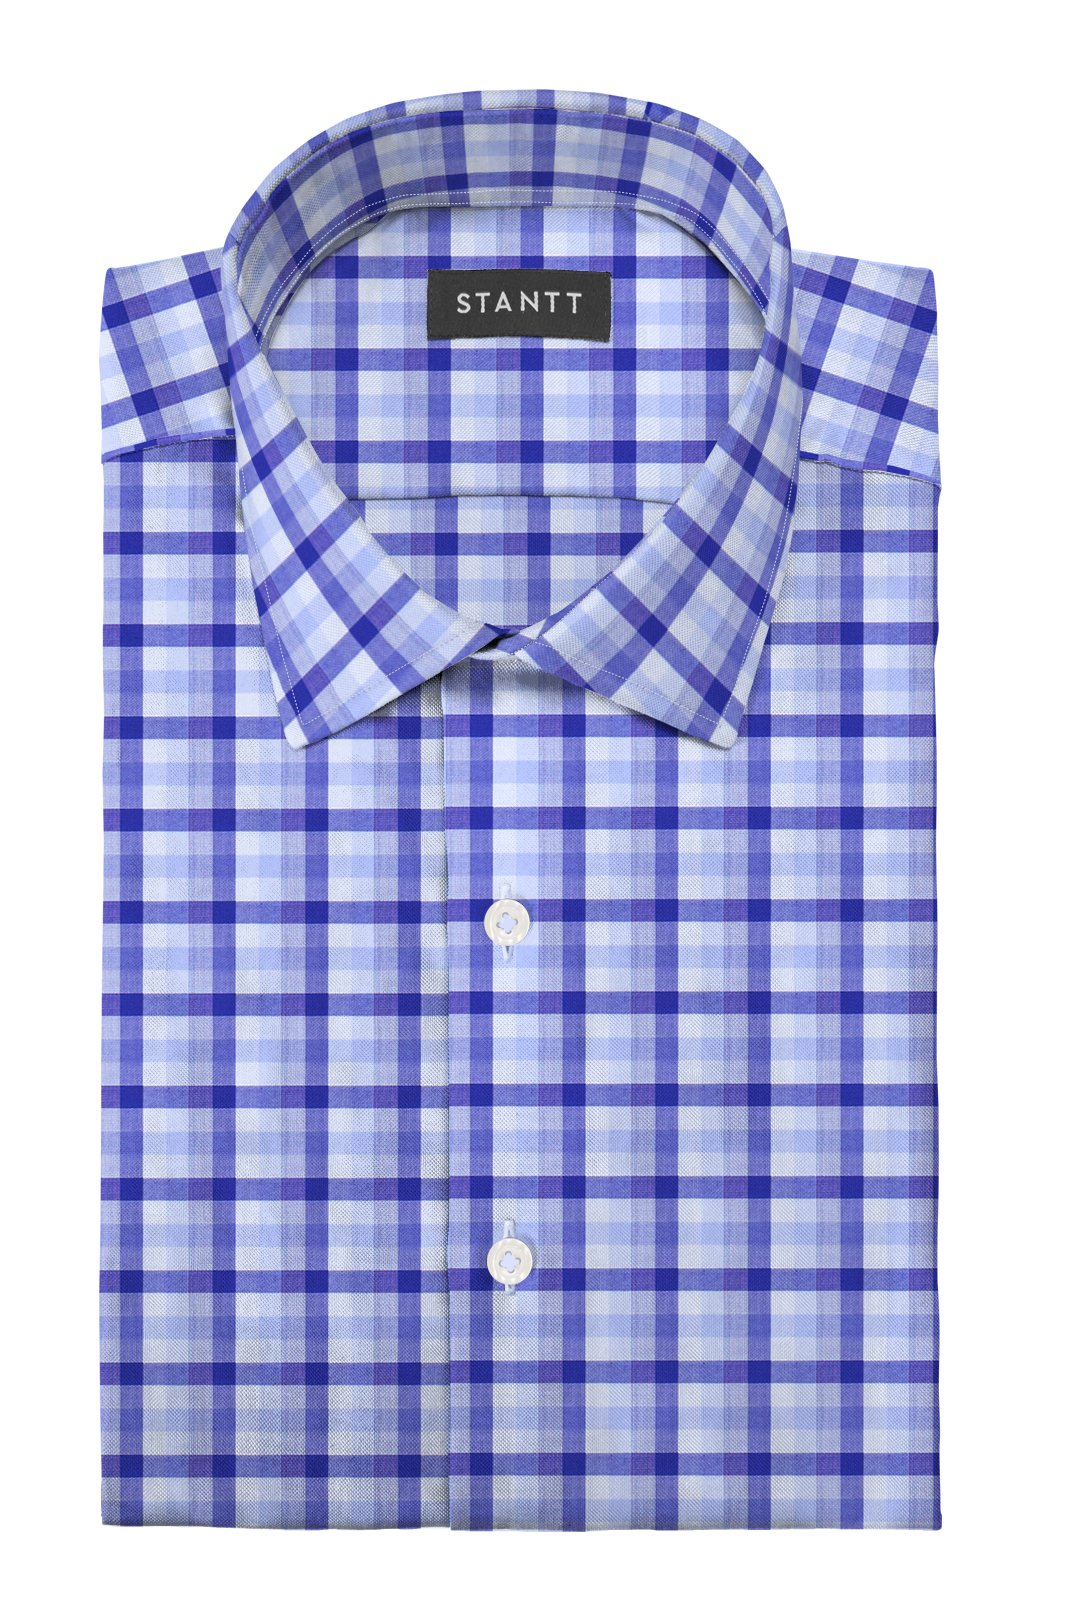 Blue Multi Check: Modified-Spread Collar, French Cuff